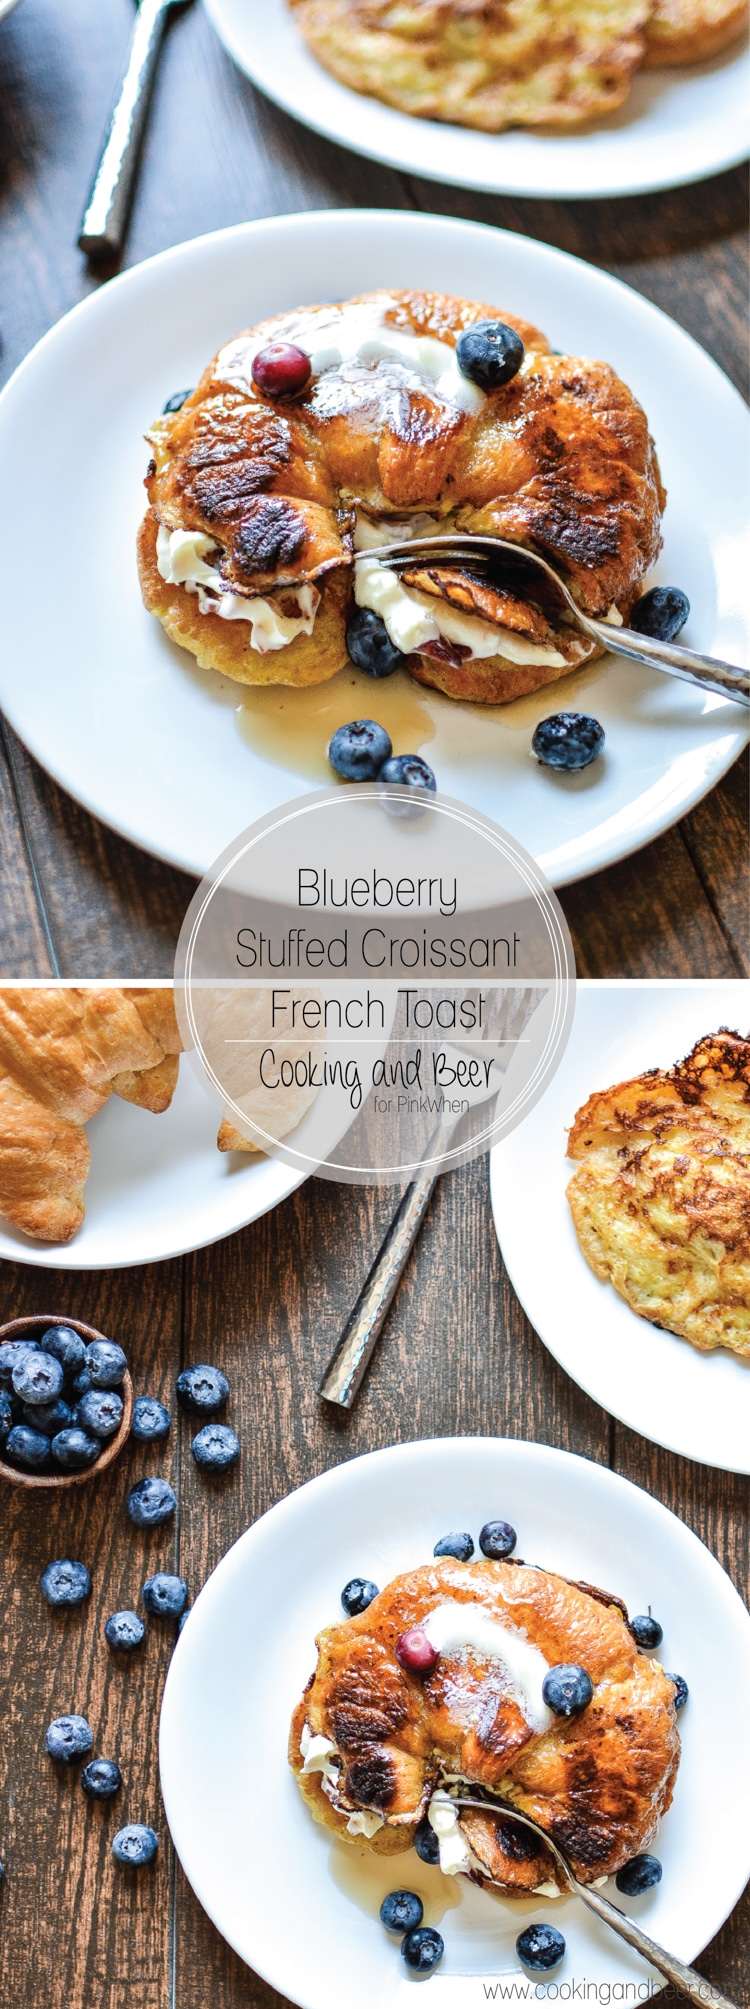 Decadent Blueberry Stuffed Croissant French Toast with Bacon. www.pinkwhen.com